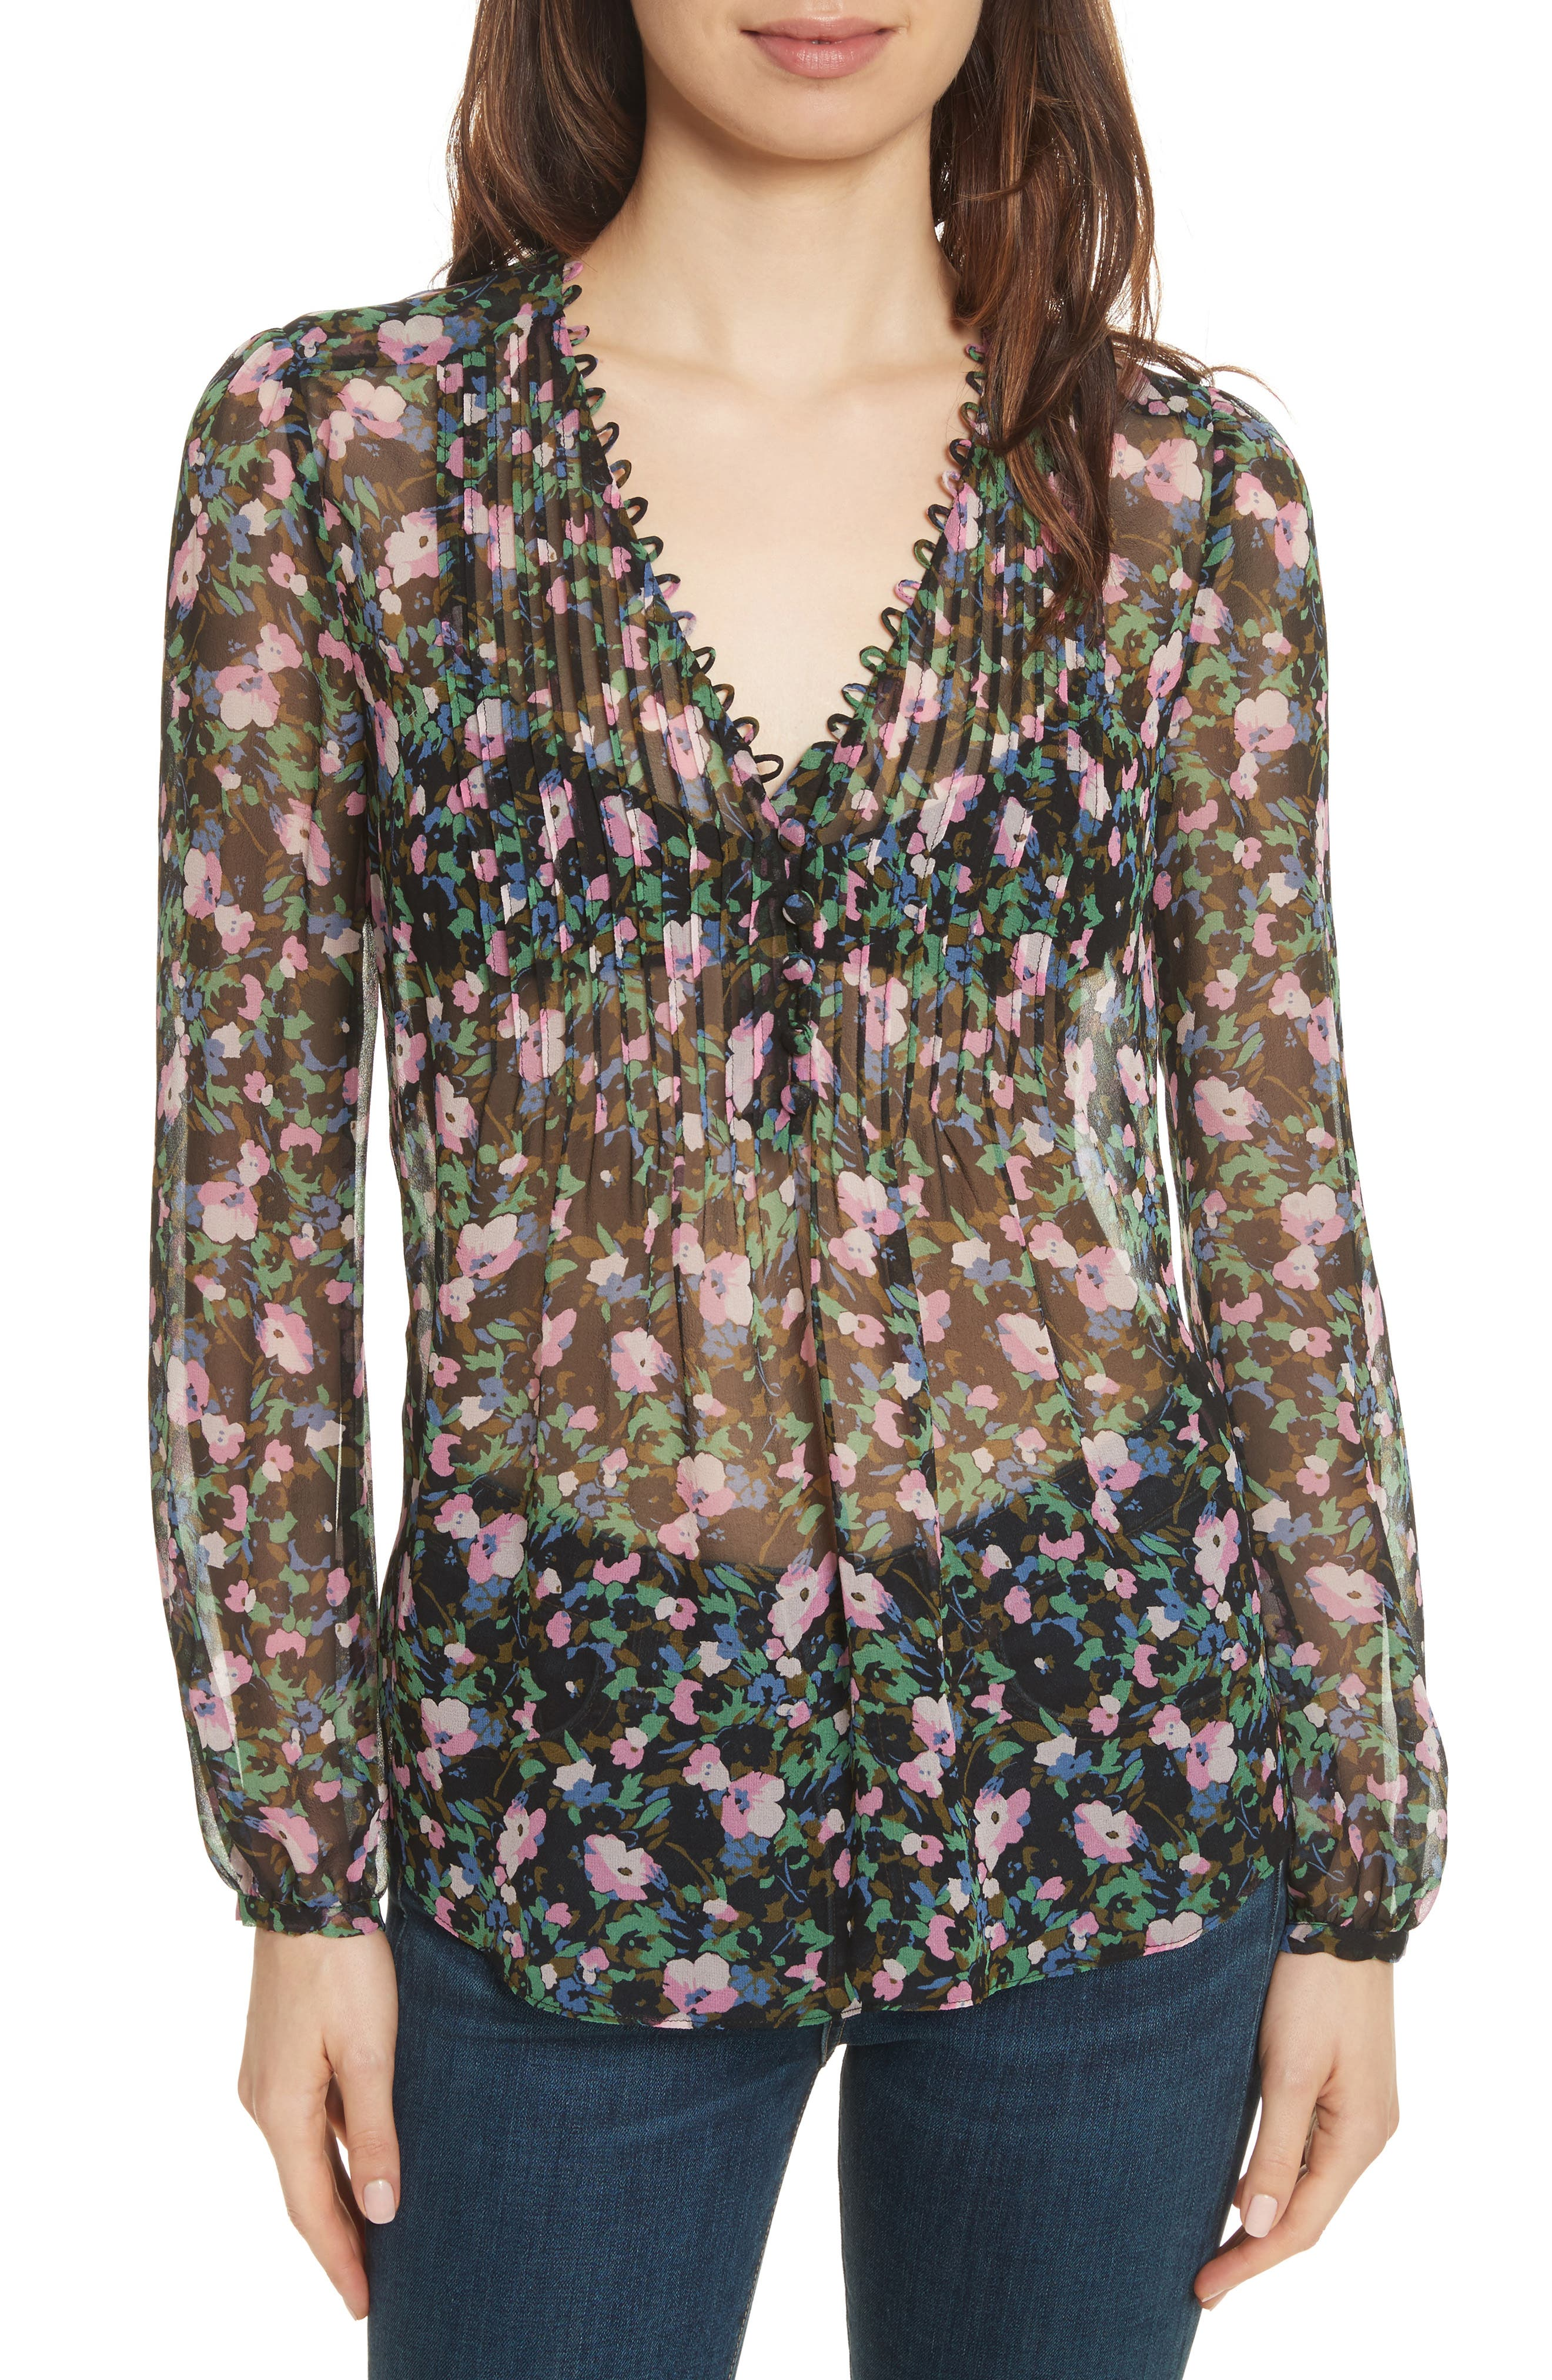 Lowell Floral Silk Blouse,                             Main thumbnail 1, color,                             Navy/ Green/ Pink